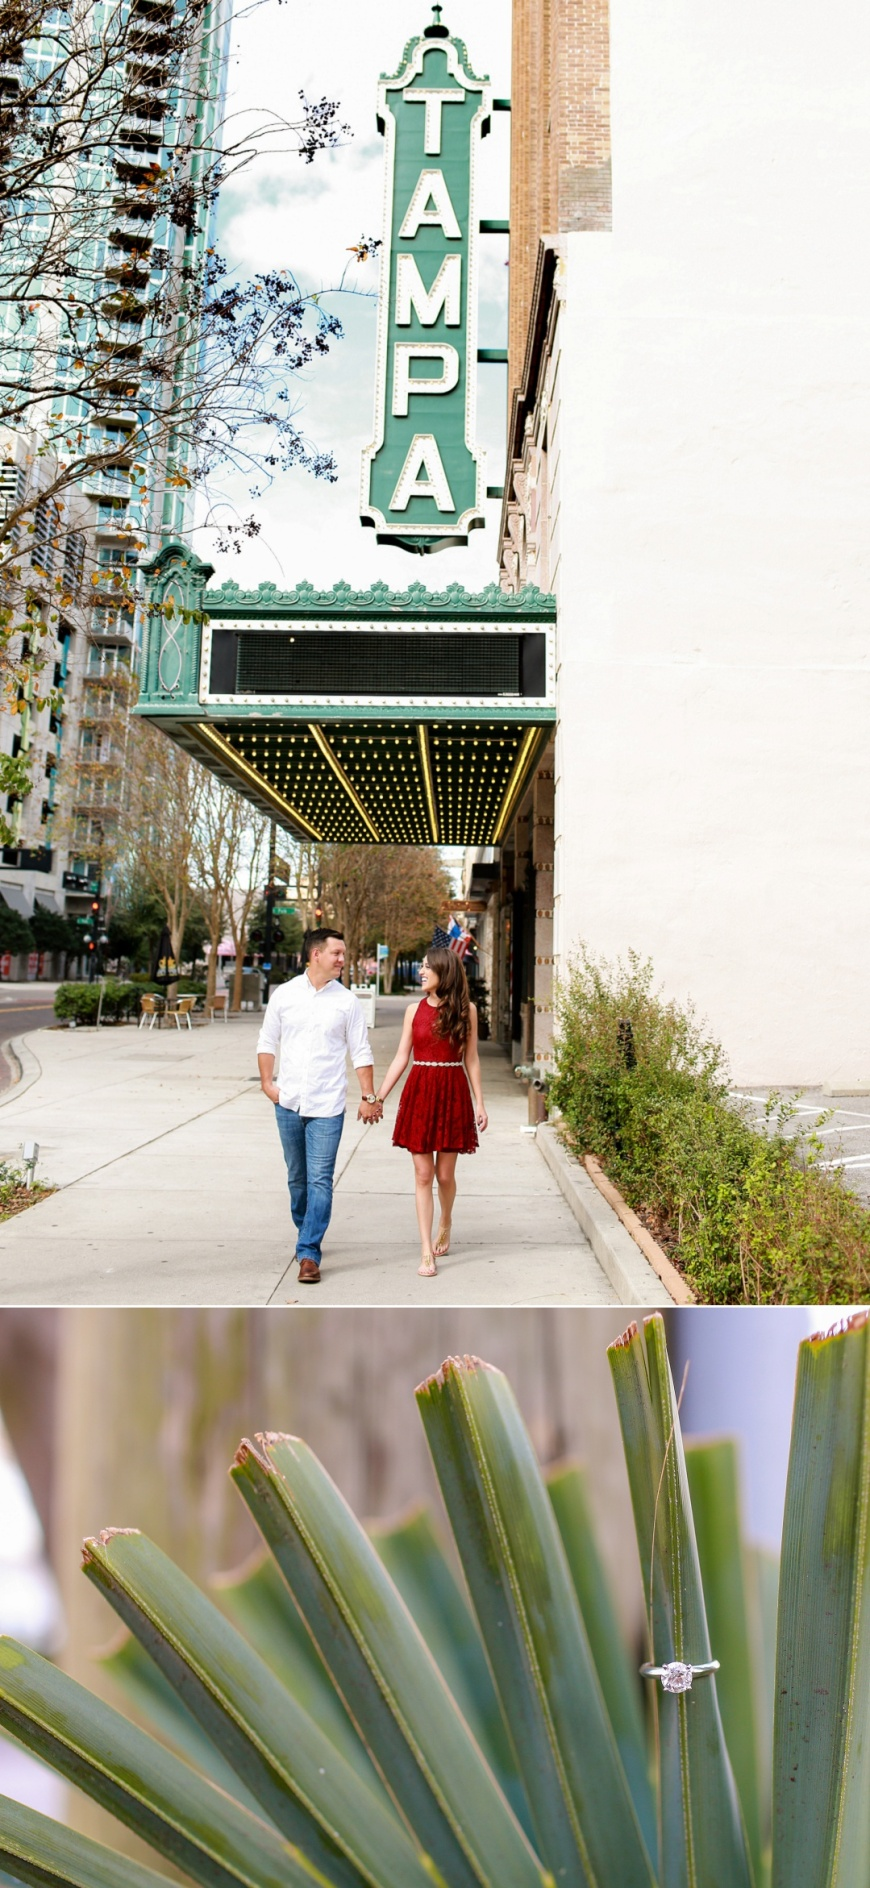 Ybor-City-Tampa-Engagement-Photographer_1002.jpg